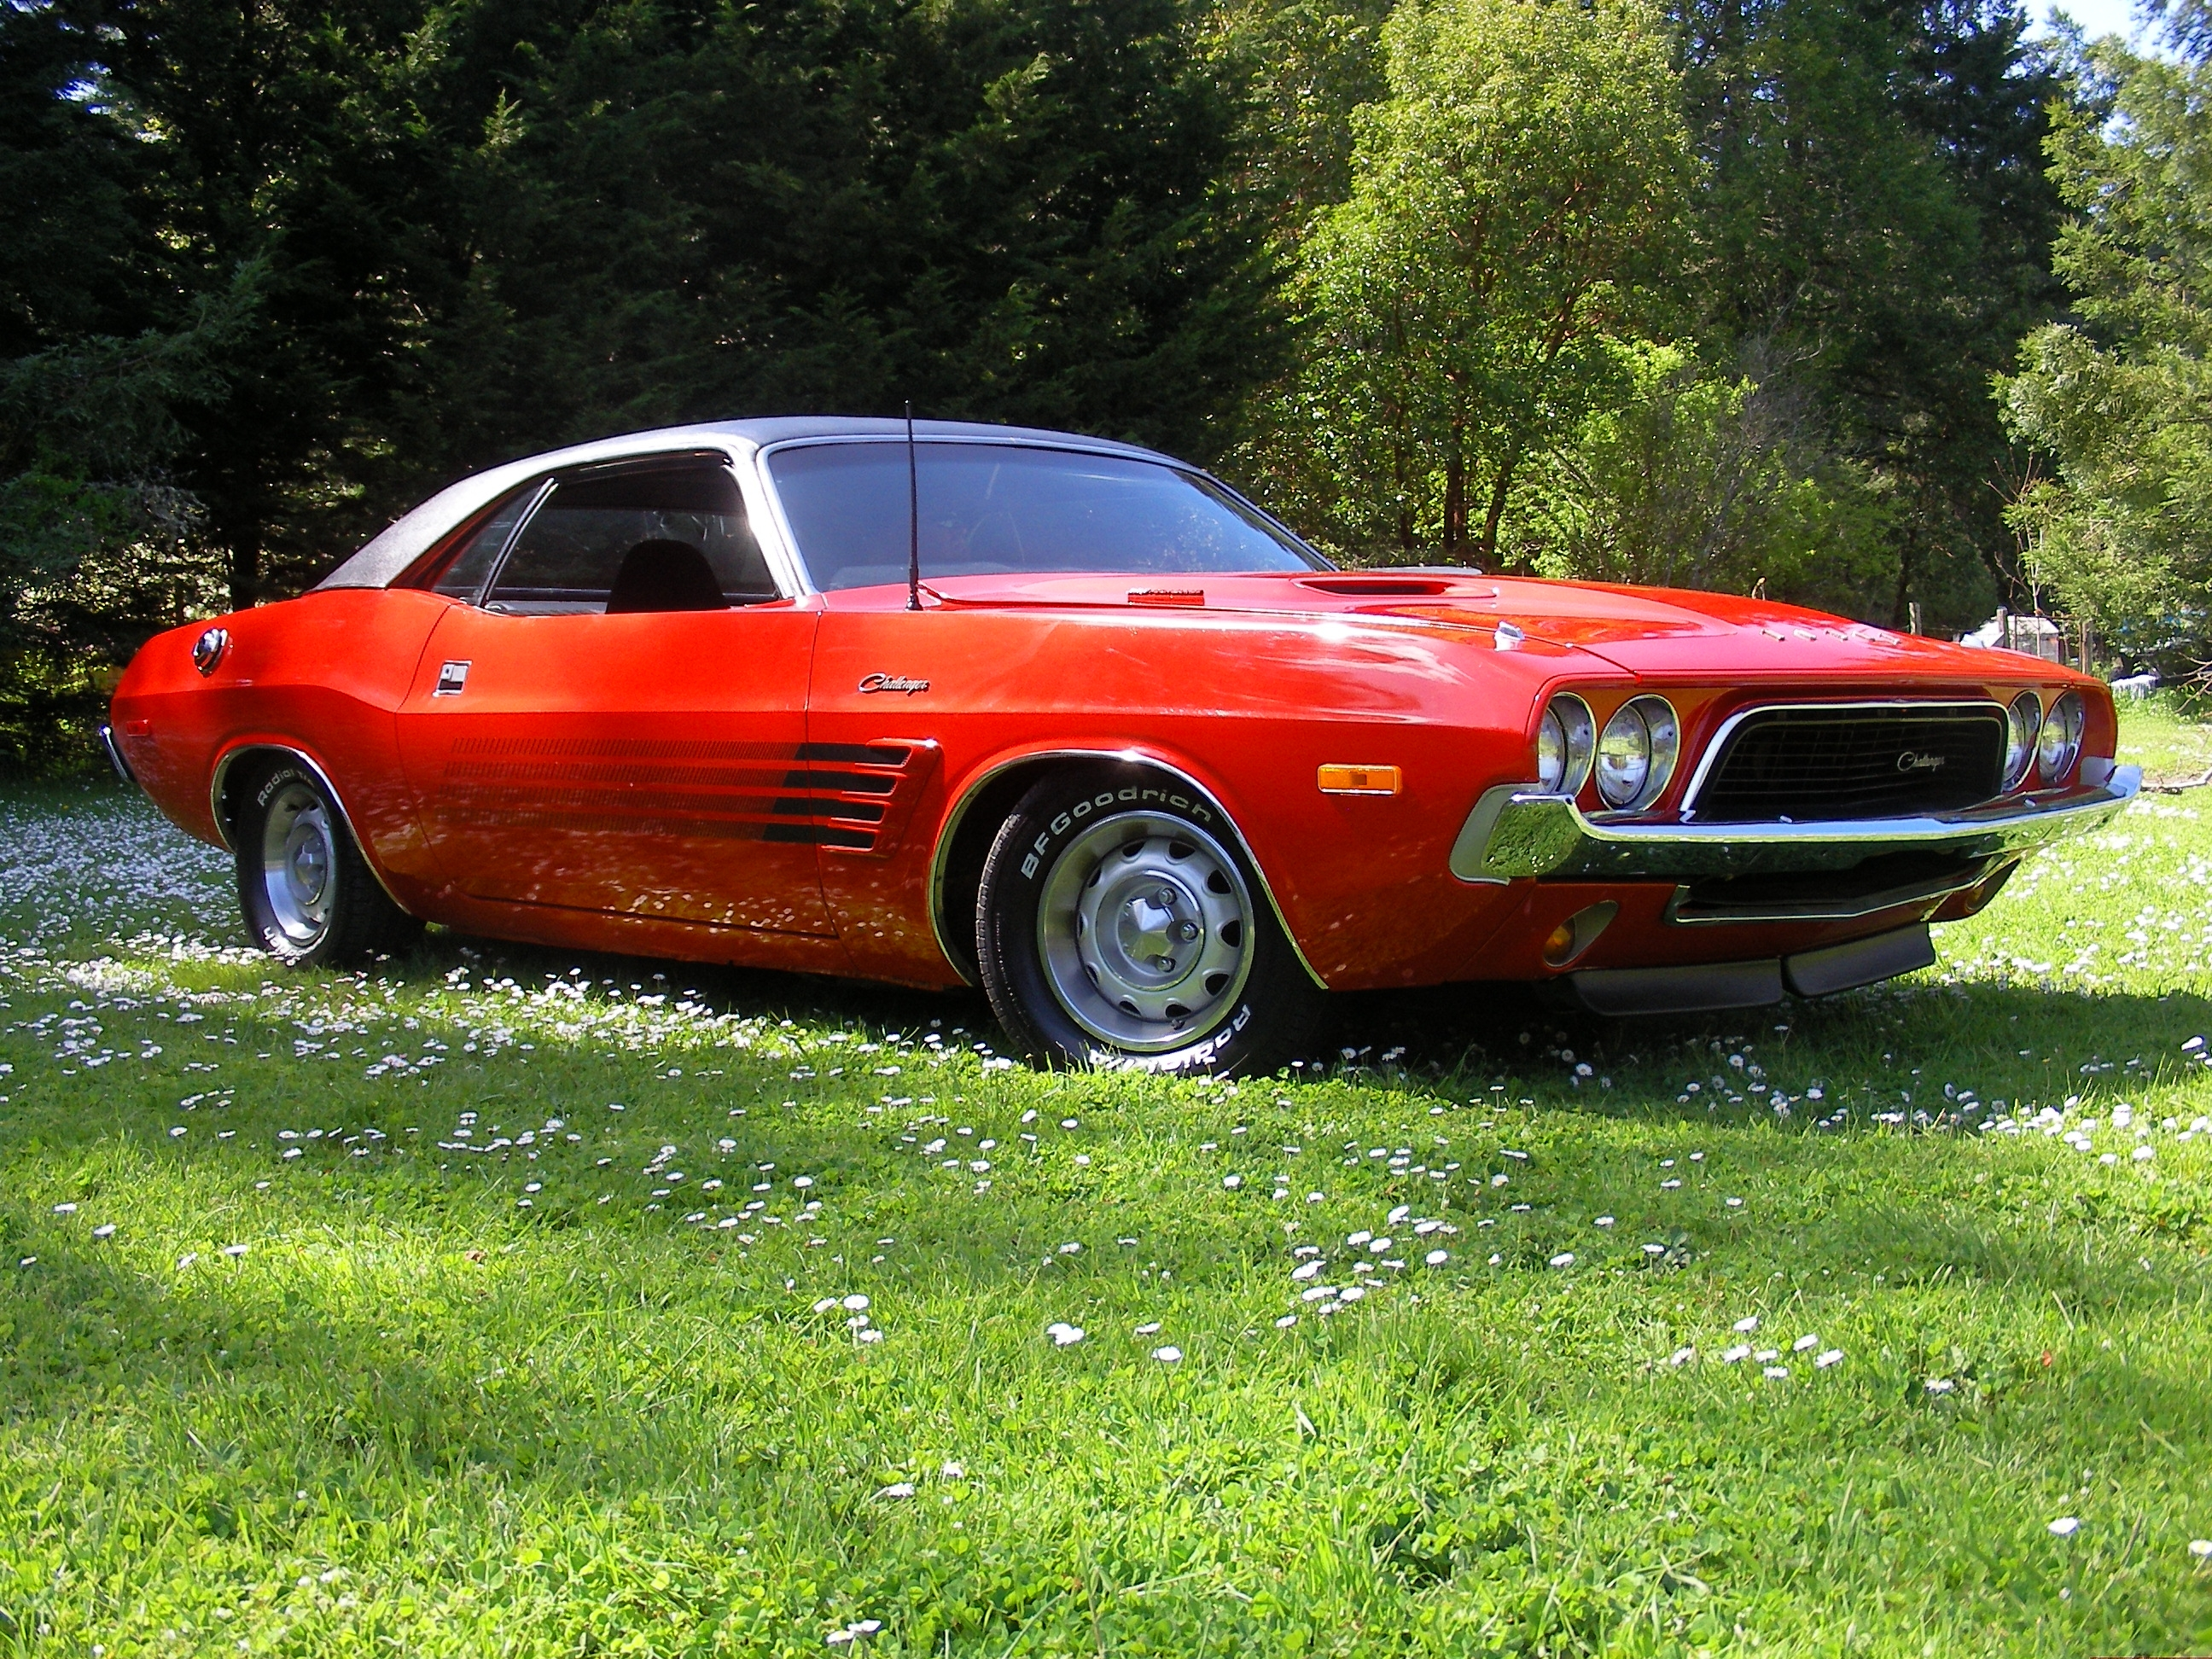 Mogtx 1974 Dodge Challenger Specs Photos Modification Info At Wiring Diagram 29979970070 Original